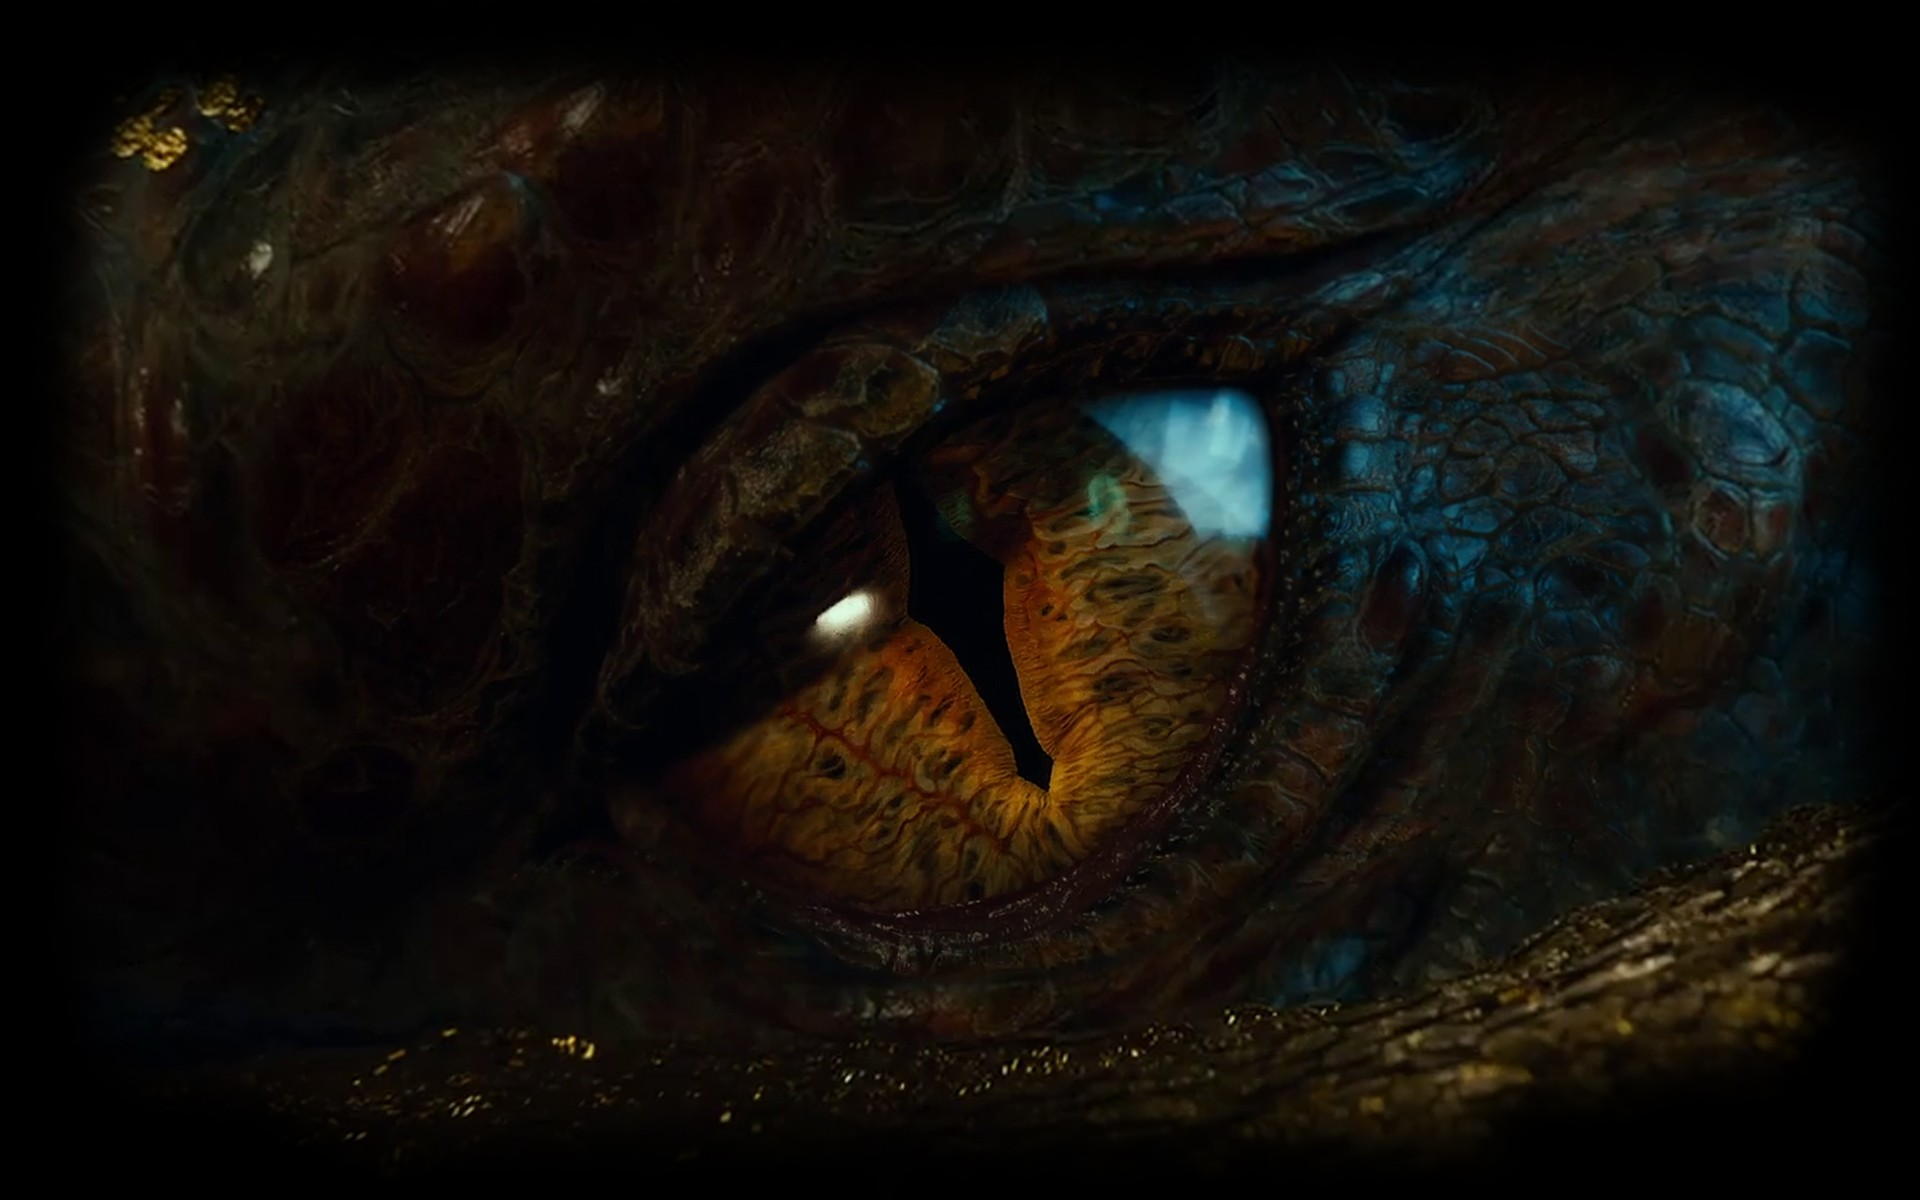 eyes dragons The Hobbit Smaug The Lord of the Rings: The Battle for Middle-earth II